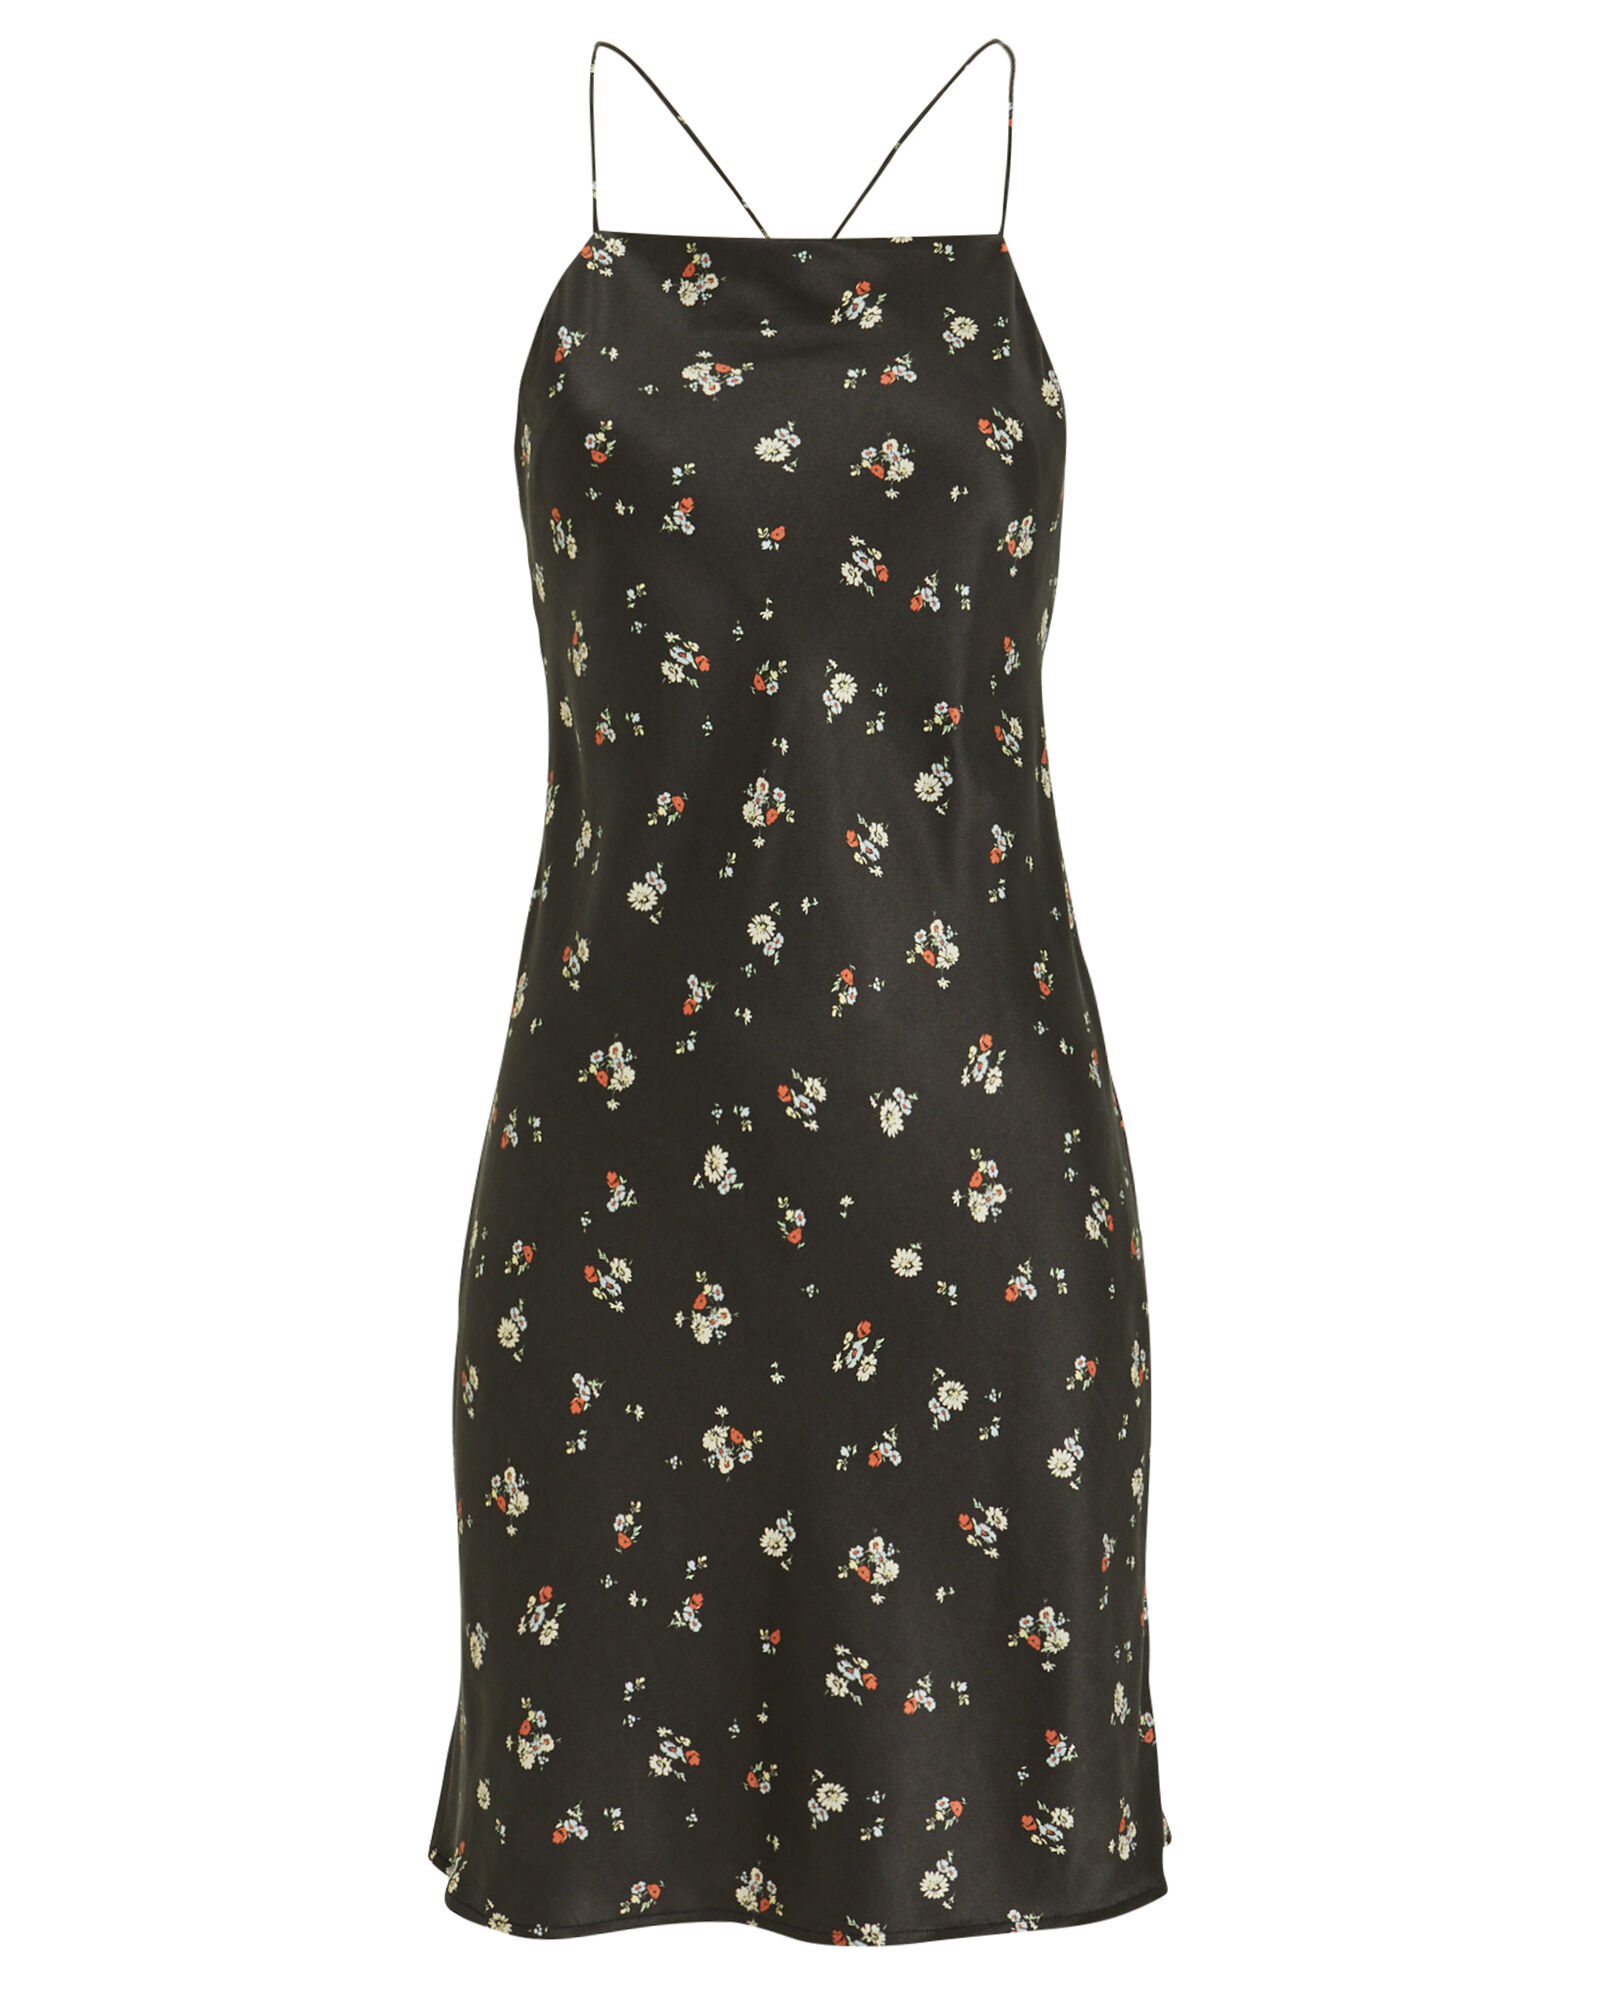 a7ad2c63a1de7 90s Short Slip Dress, BLACK/FLORAL, ...